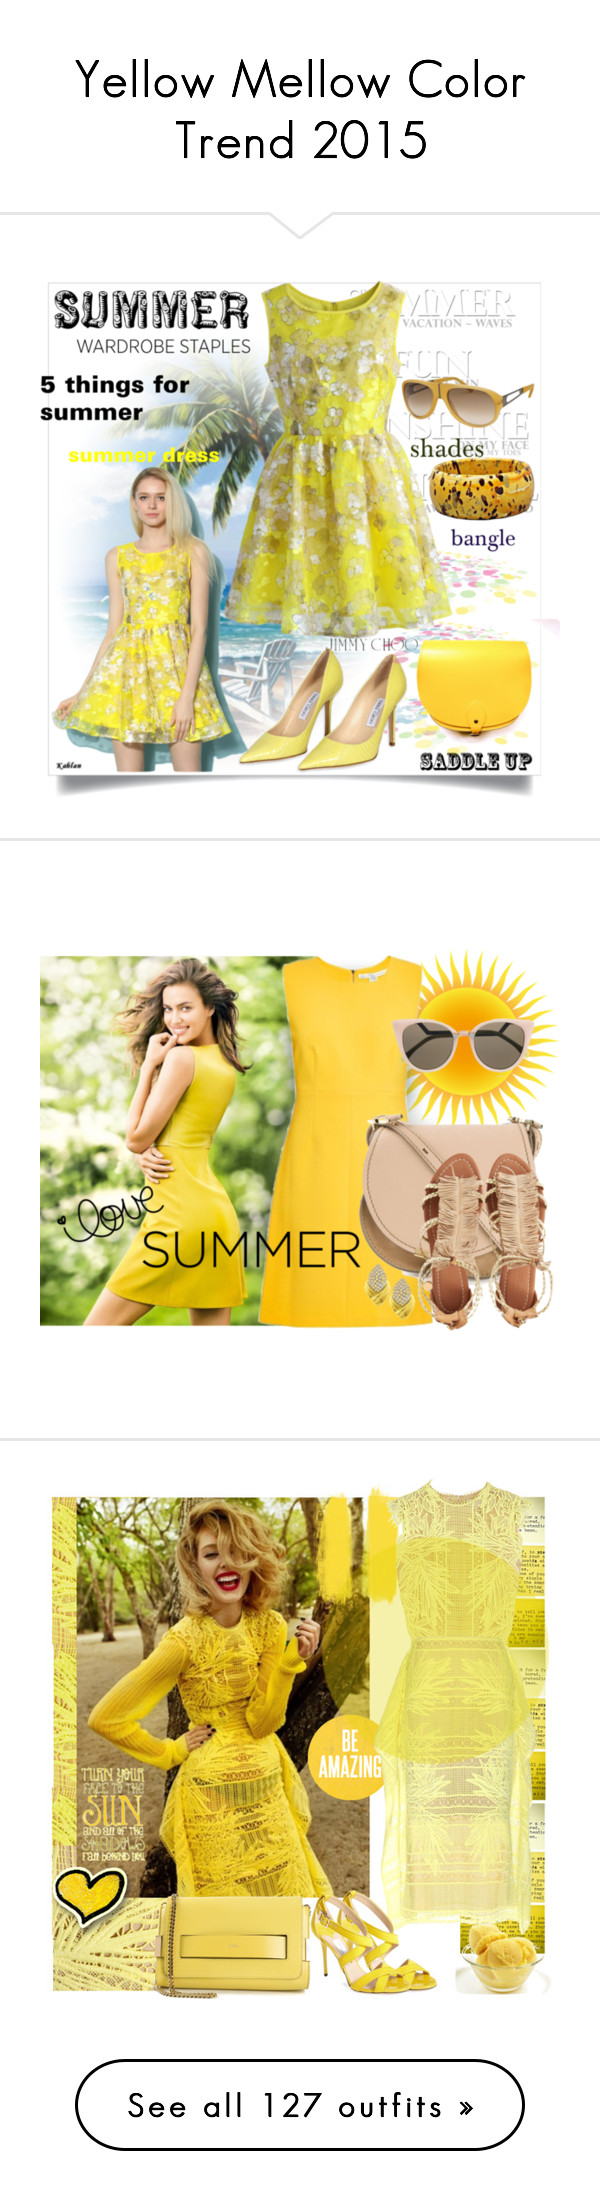 """""""Yellow Mellow Color Trend 2015"""" by yours-styling-best-friend ❤ liked on Polyvore"""